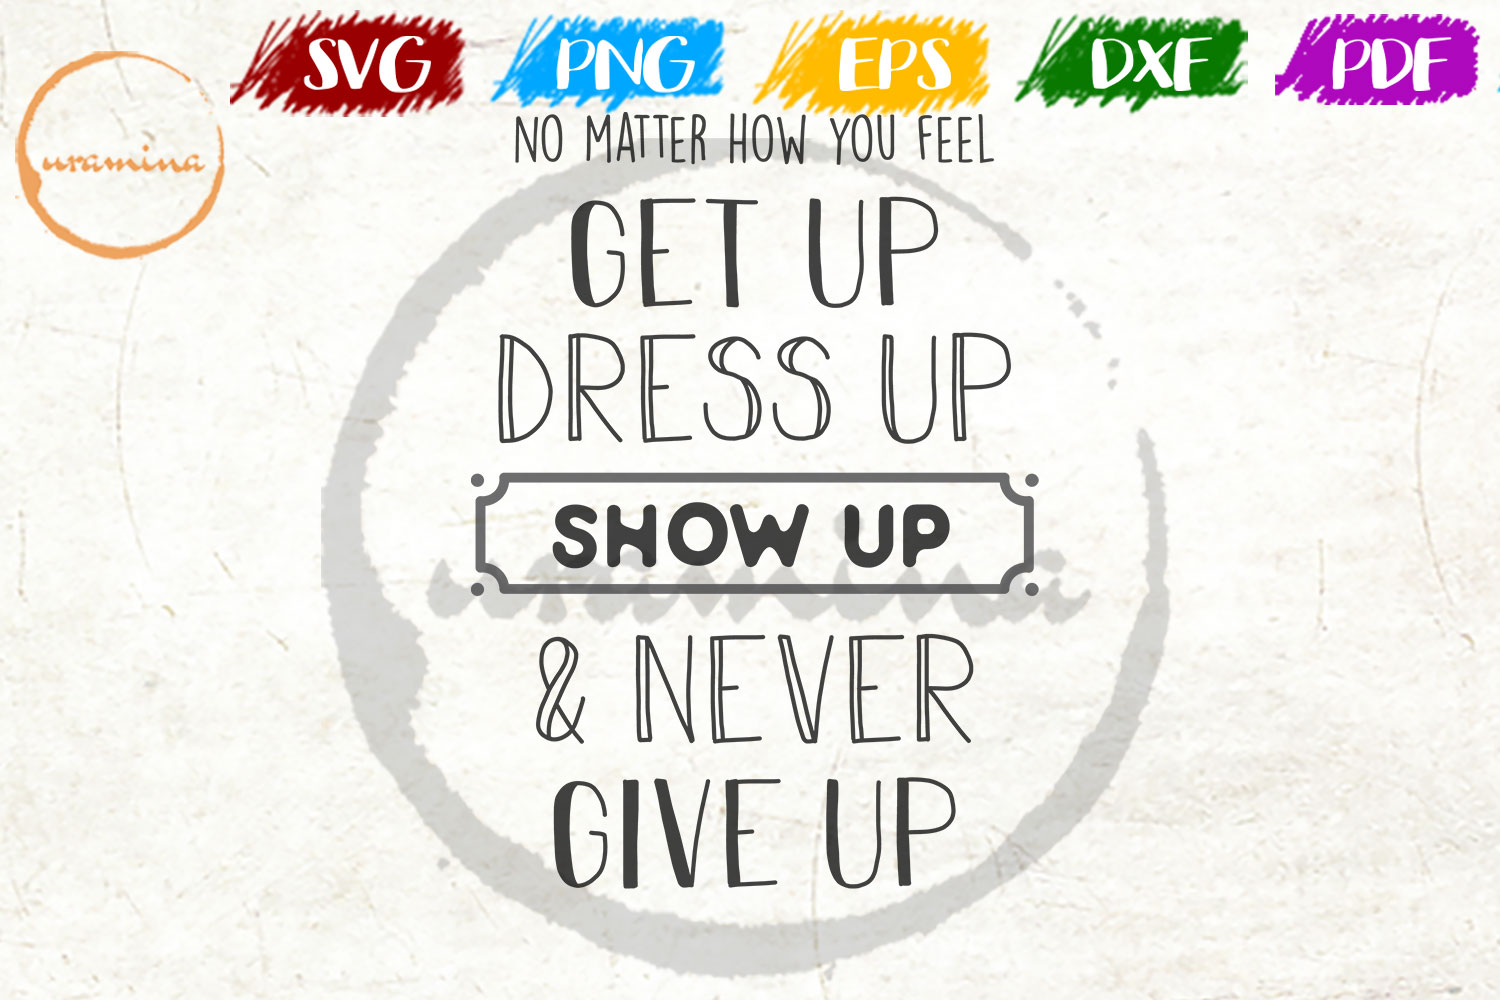 Download Free No Matter How You Feel Get Up Dress Up Graphic By Uramina for Cricut Explore, Silhouette and other cutting machines.